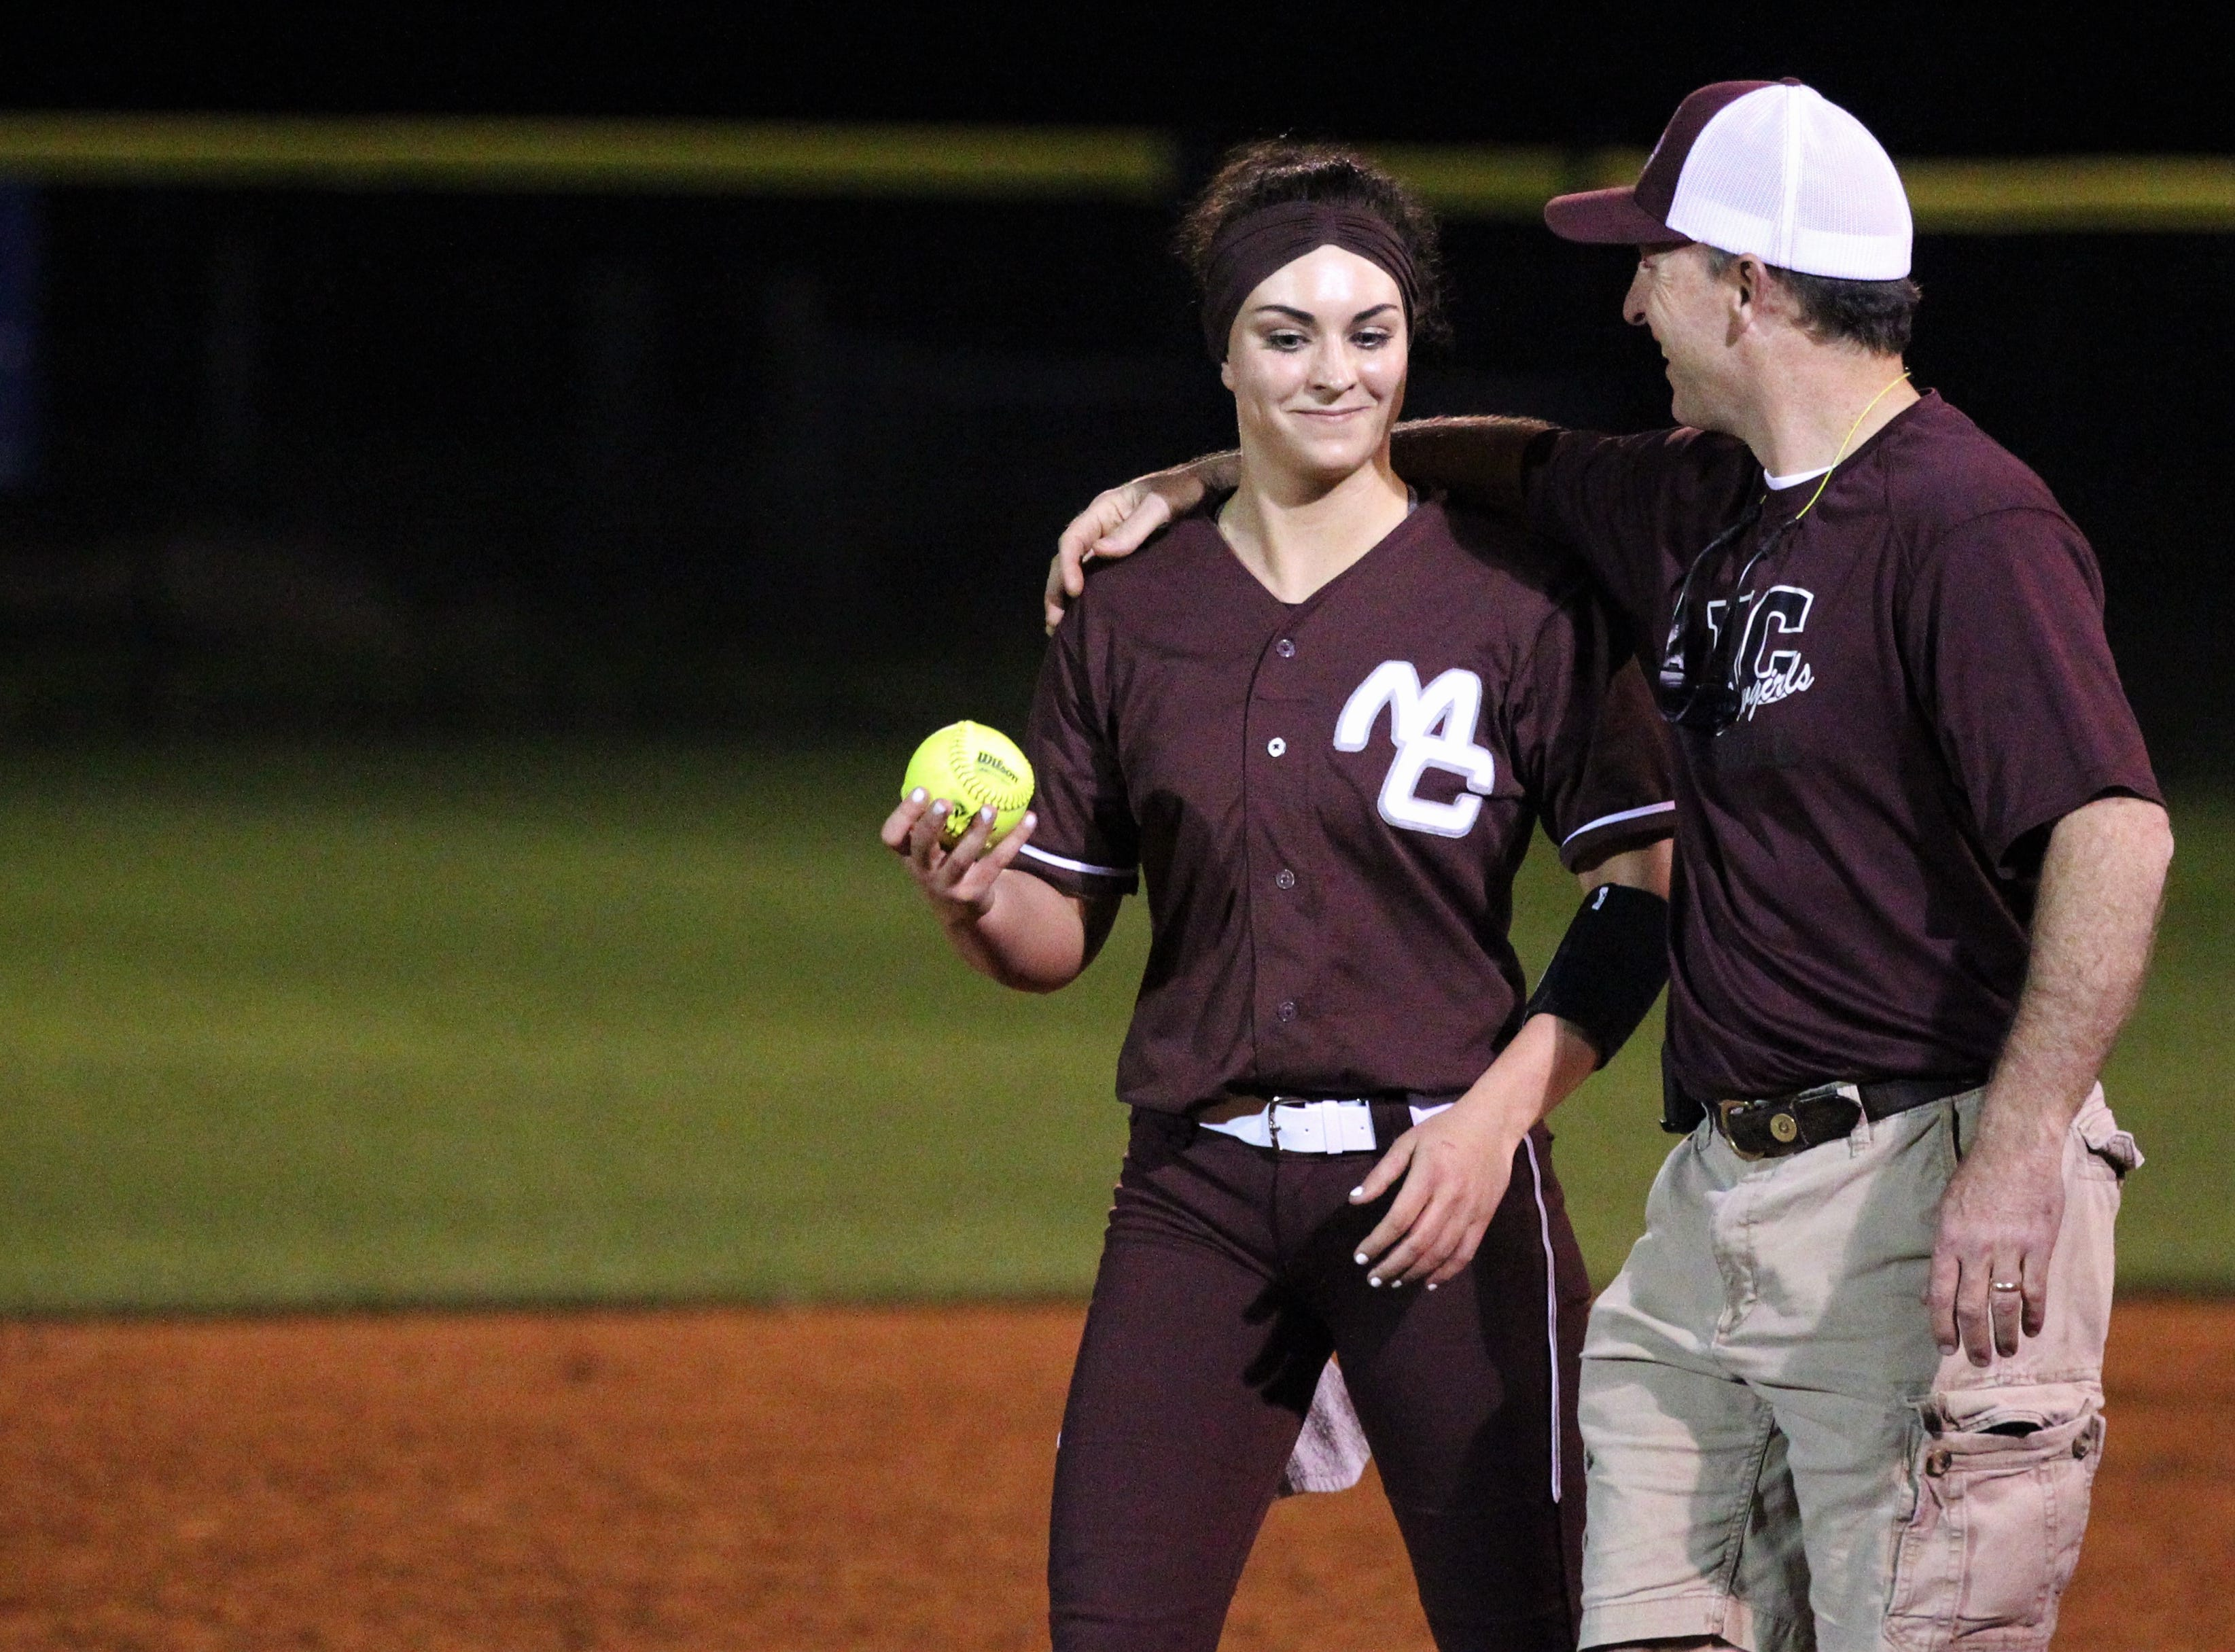 Madison County senior pitcher Reese Rutherford threw a three-inning perfect game with all strikeouts and hit a grand slam home run as the Cowgirls' softball team beat Suwannee 17-0 on Feb. 28, 2019.